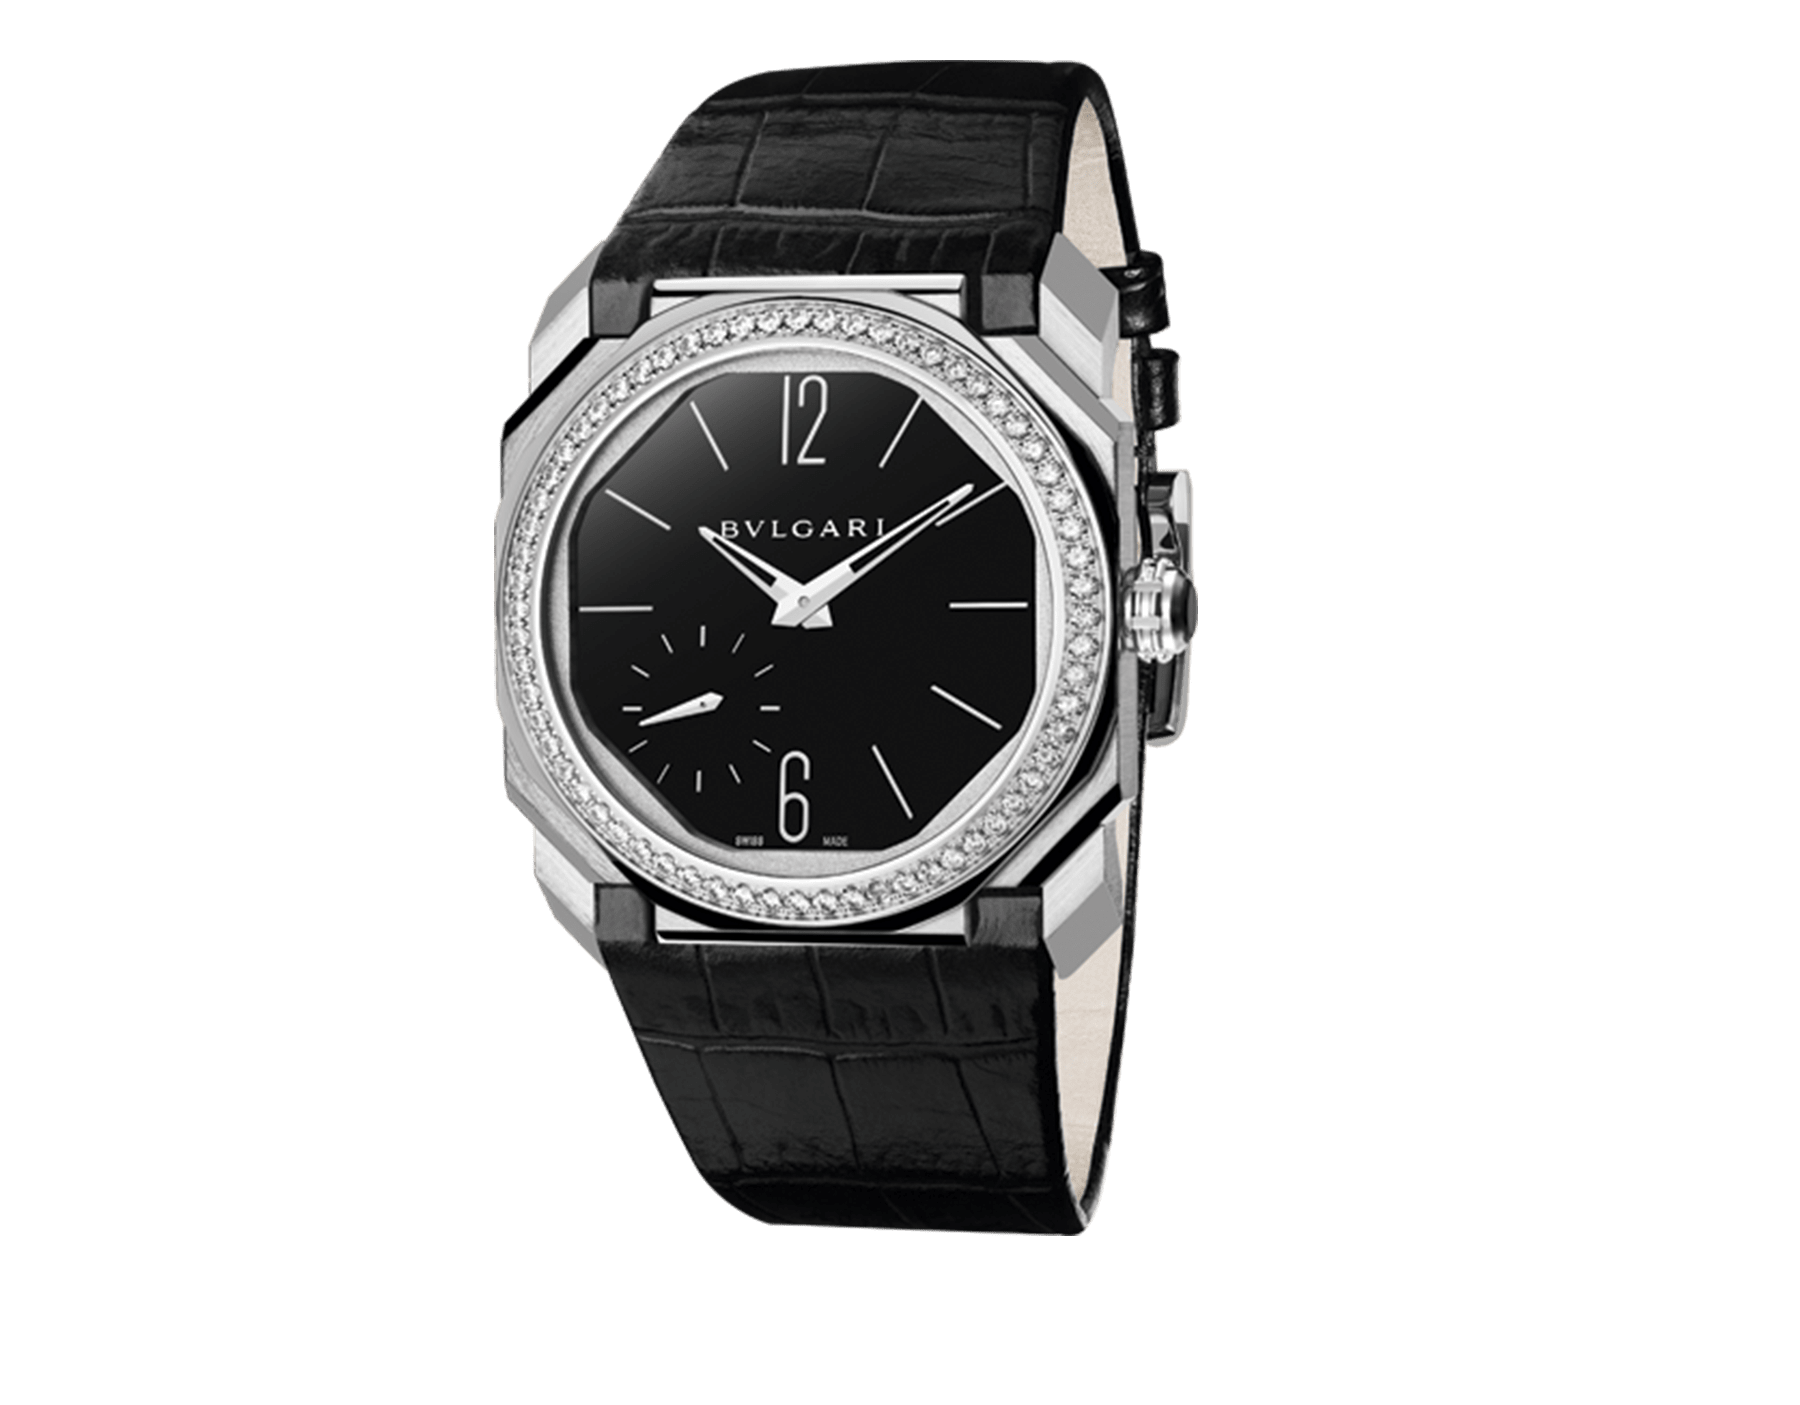 Octo Finissimo watch with extra thin mechanical manufacture movement, manual winding, small seconds and back-side power reserve. Platinum case, bezel set with brilliant-cut diamonds, black lacquered dial and black alligator bracelet. 102373 image 1